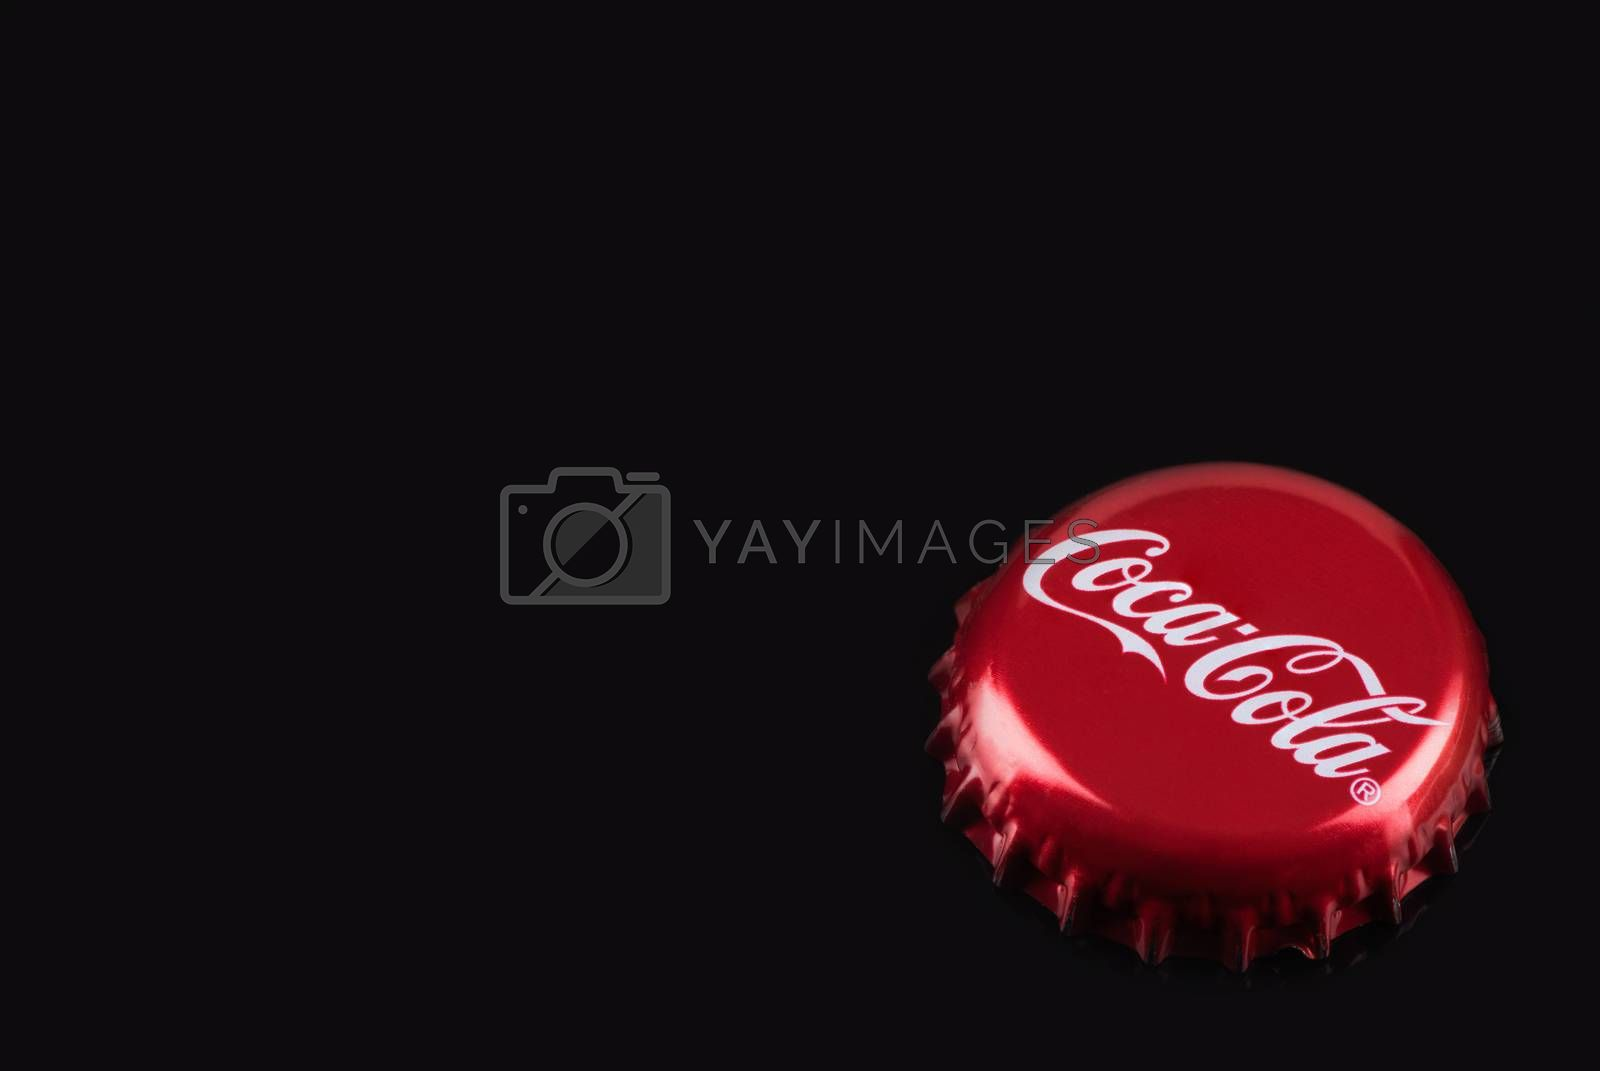 TARNOW, POLAND - FEBRUARY 01, 2020: Classic Red Coca-Cola Bottle Cap. Cocal-Cola is One of the Most Popular Refreshing Drinks.